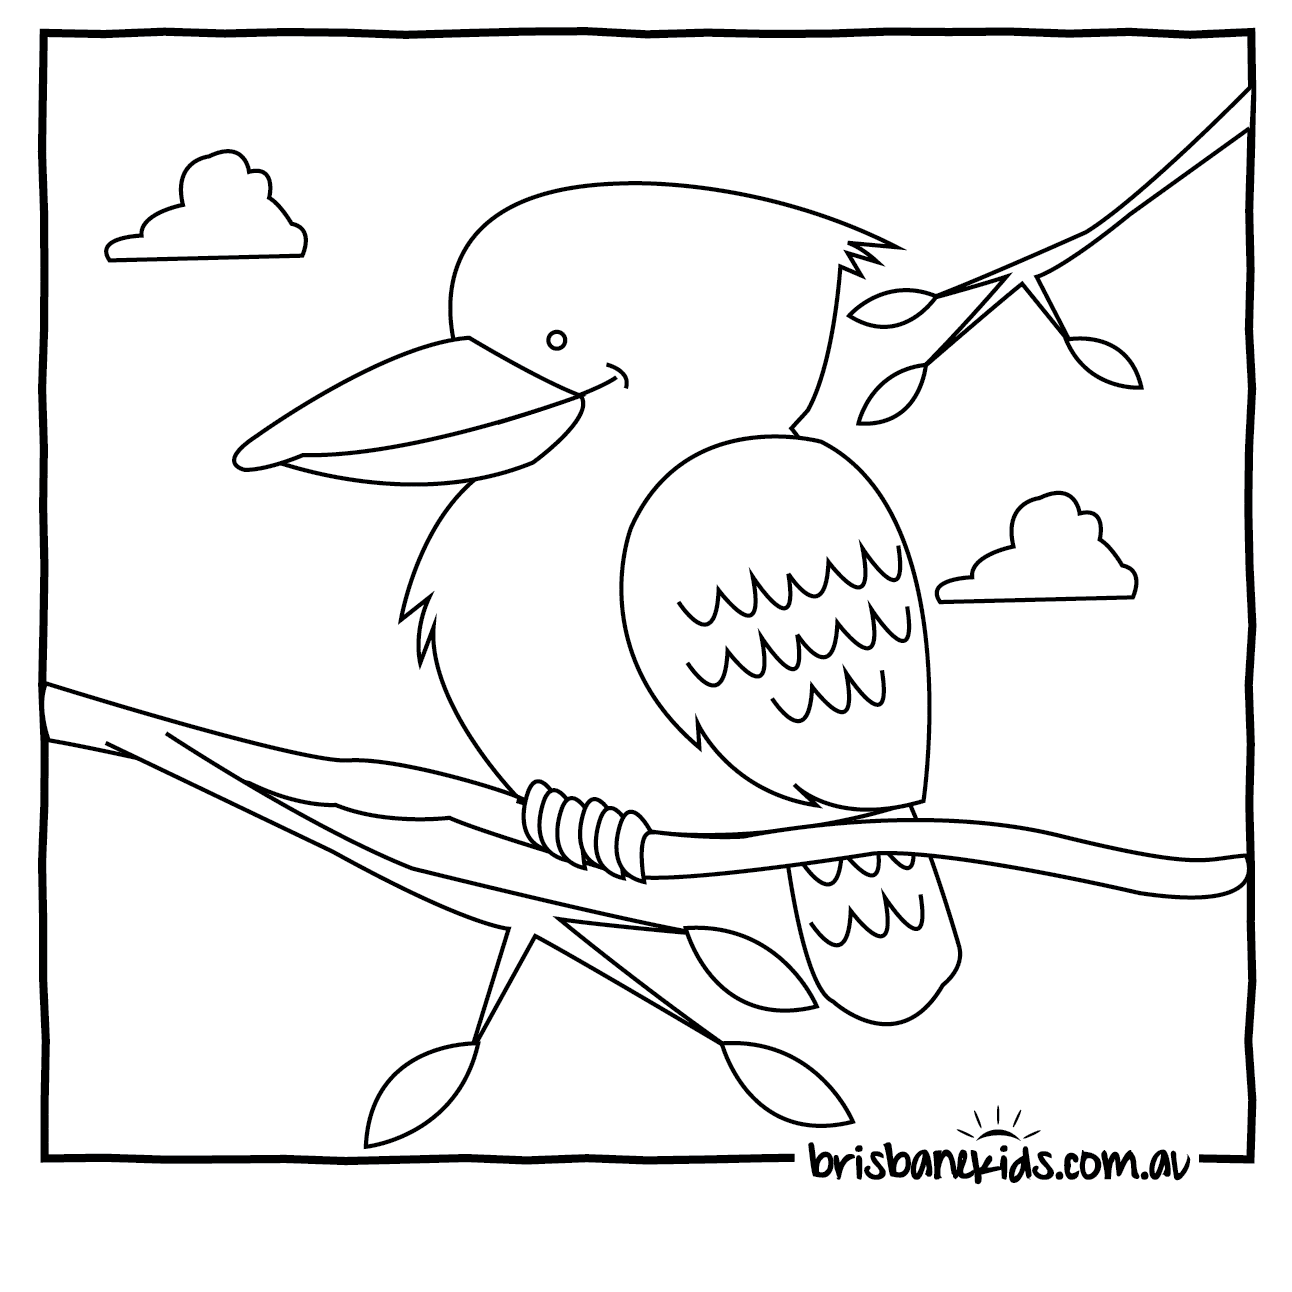 Collouring: Australian Animals Colouring Pages